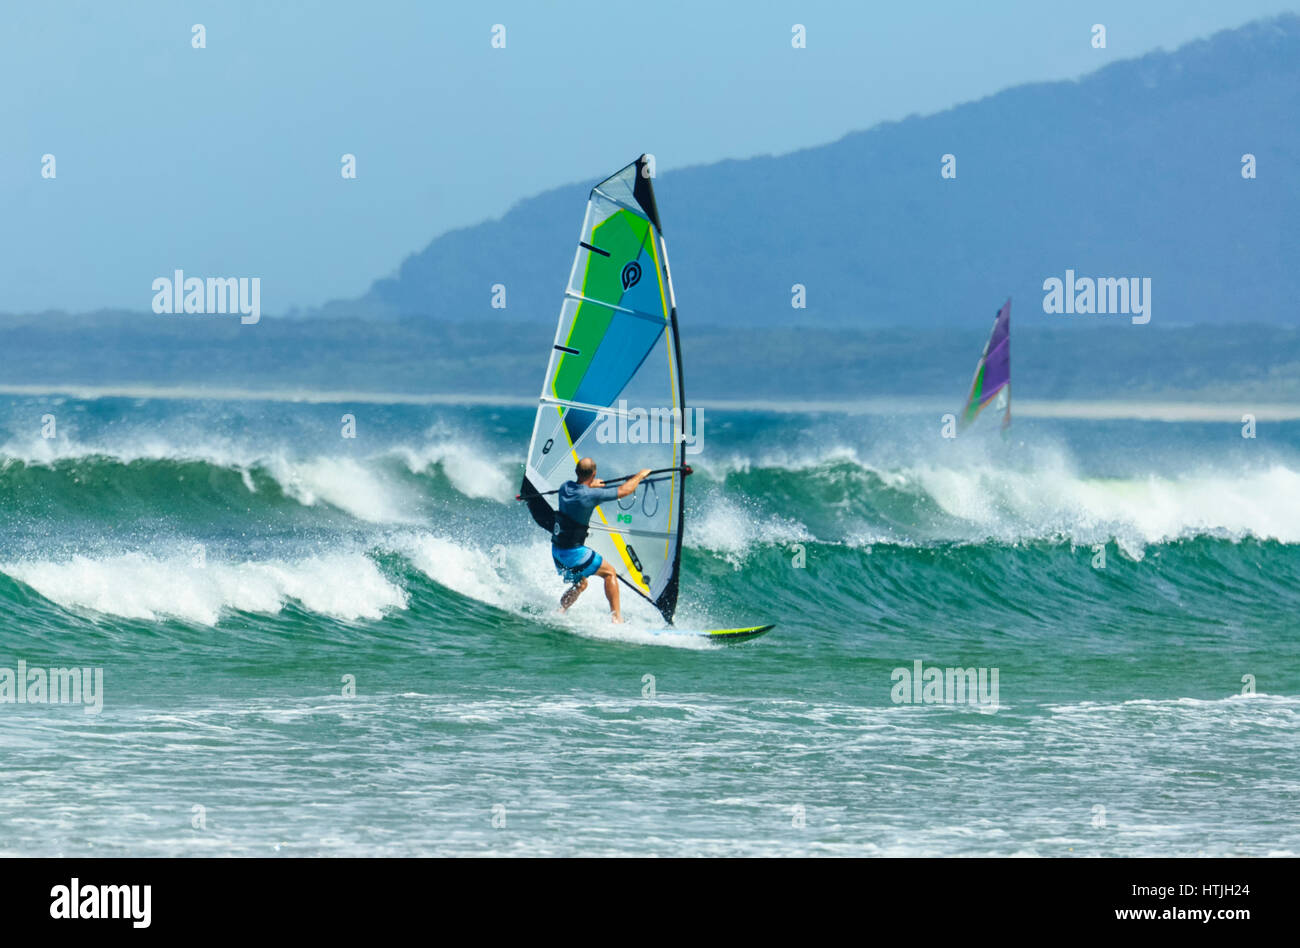 Windsurfer Surfen in schwerer See mit großen Wellen am Seven Mile Beach, Gerroa, Illawarra Coast, New-South.Wales, Stockfoto